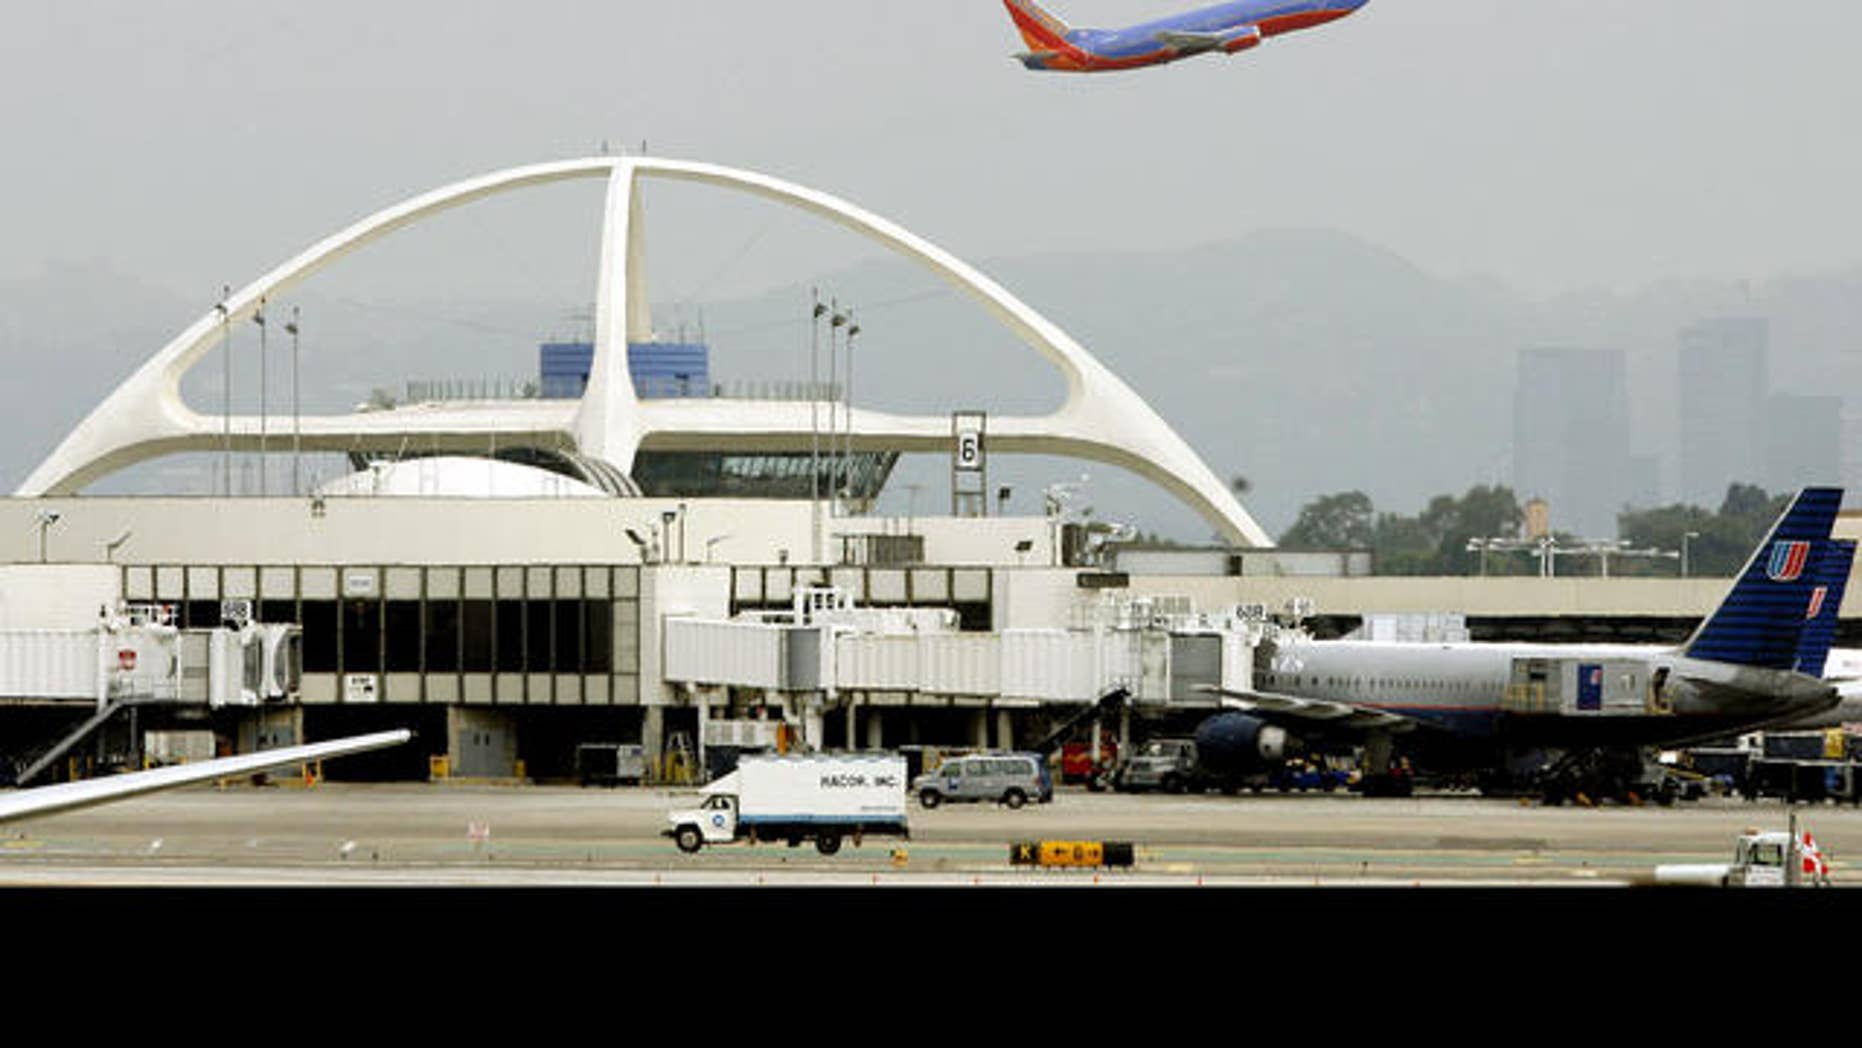 A Southwest aircraft departs Los Angeles International Airport (LAX) Monday, Aug. 7, 2006.